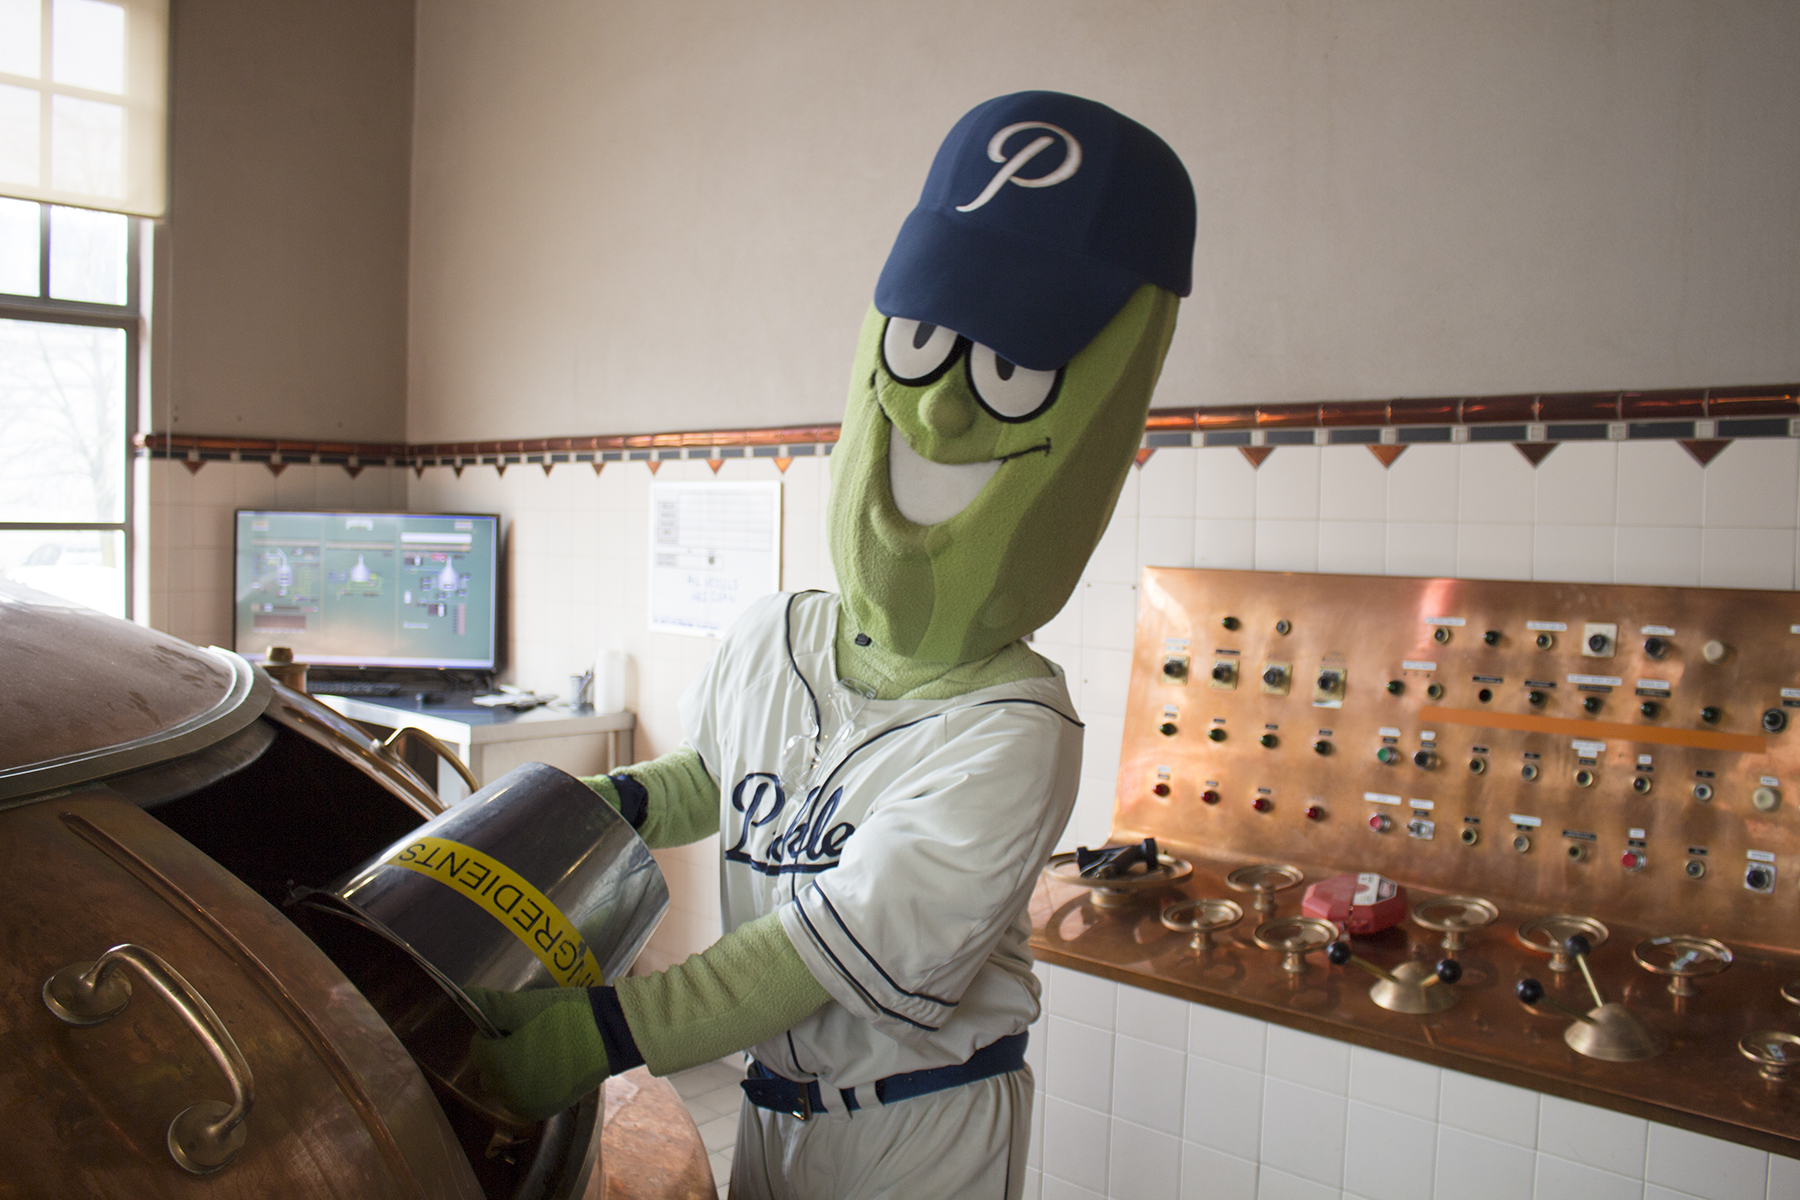 Dillon The Pickle assisting in brewing Dill's Pils. (image courtesy of Portland Brewing)